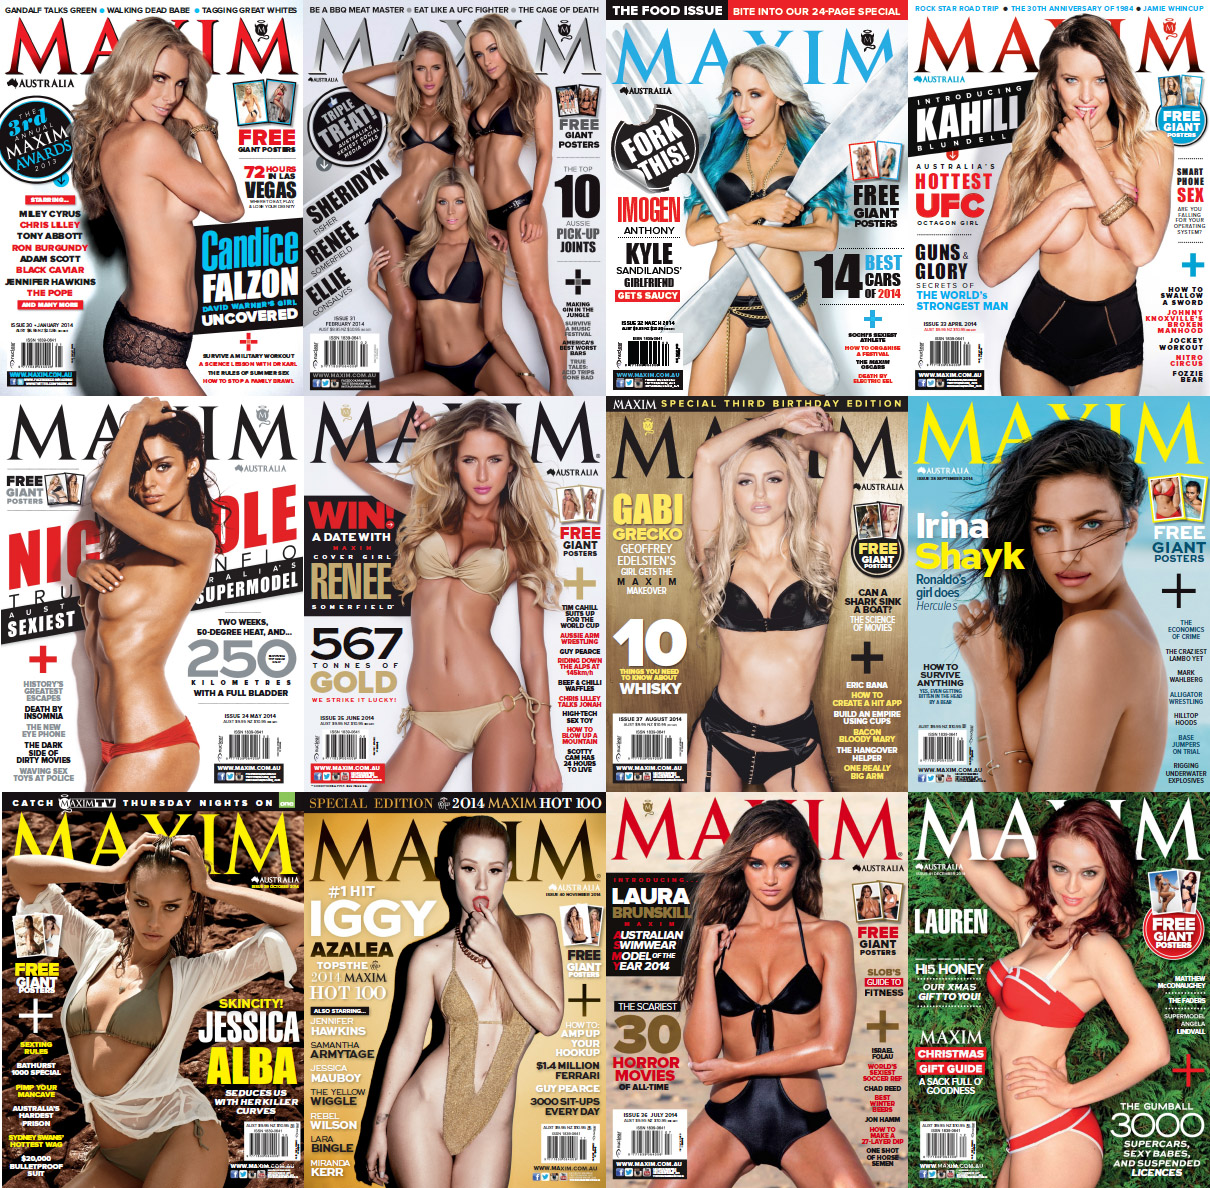 Maxim Australia Magazine - Full Year 2014 Issues Collection free download